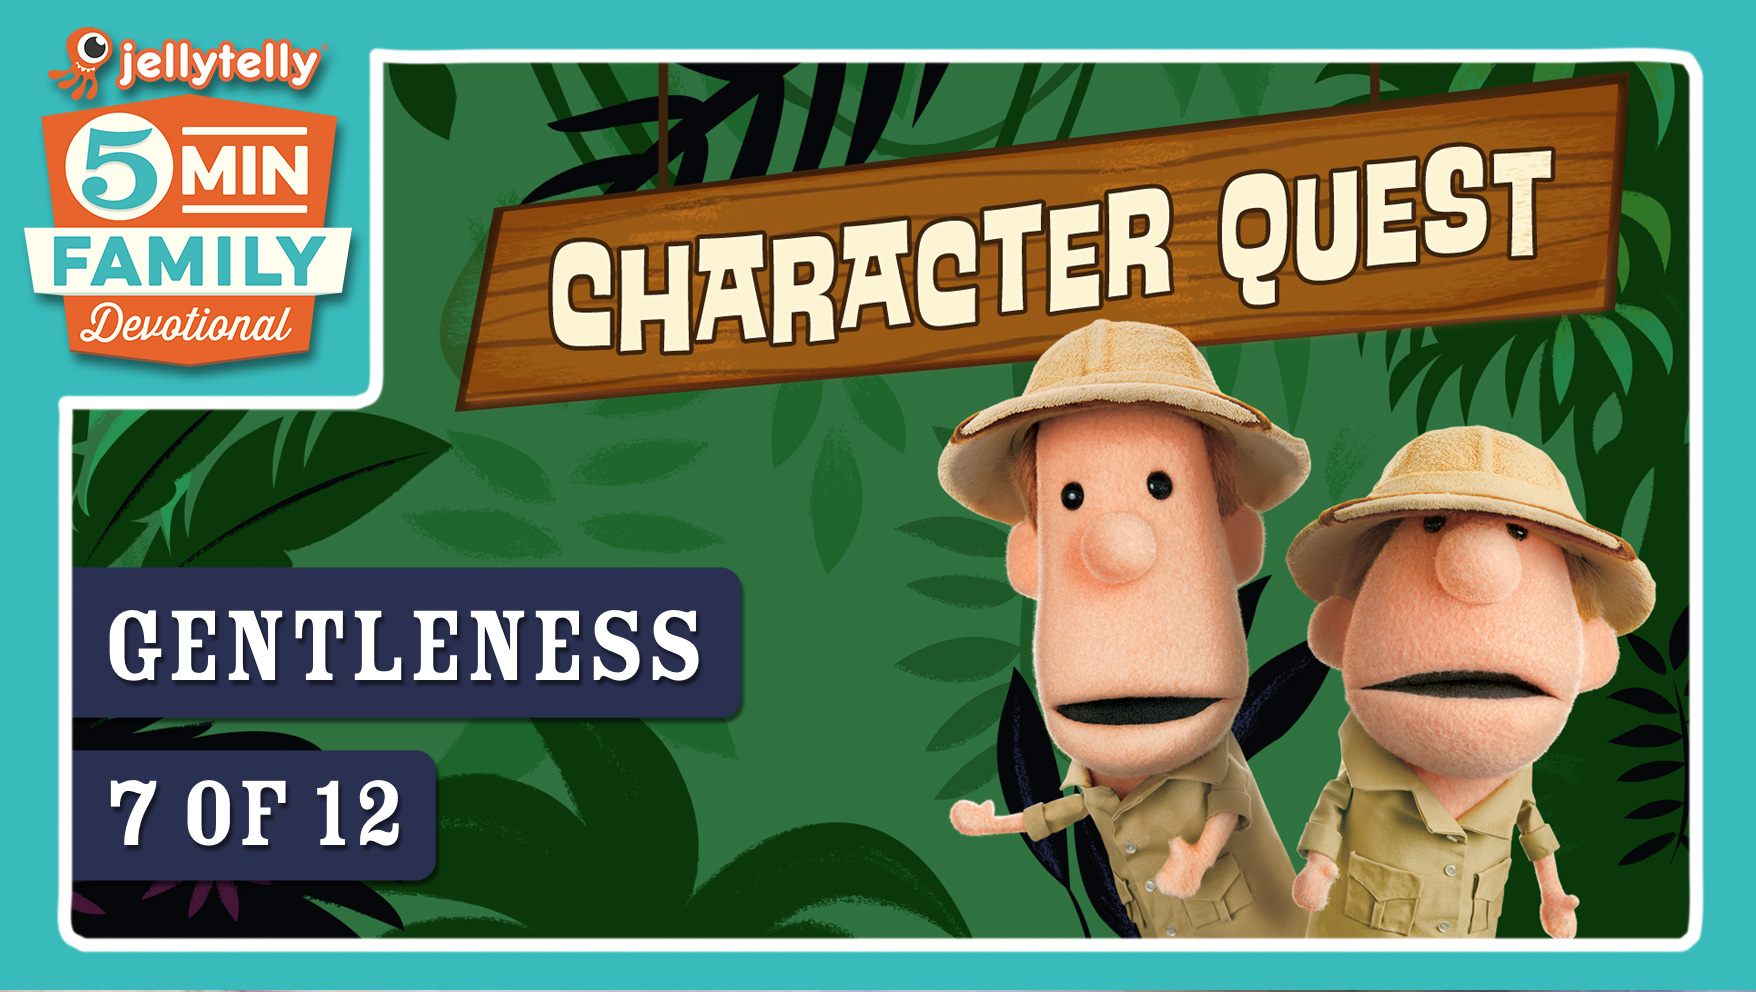 Gentleness - Character Quest 5 Minute Family Devotional